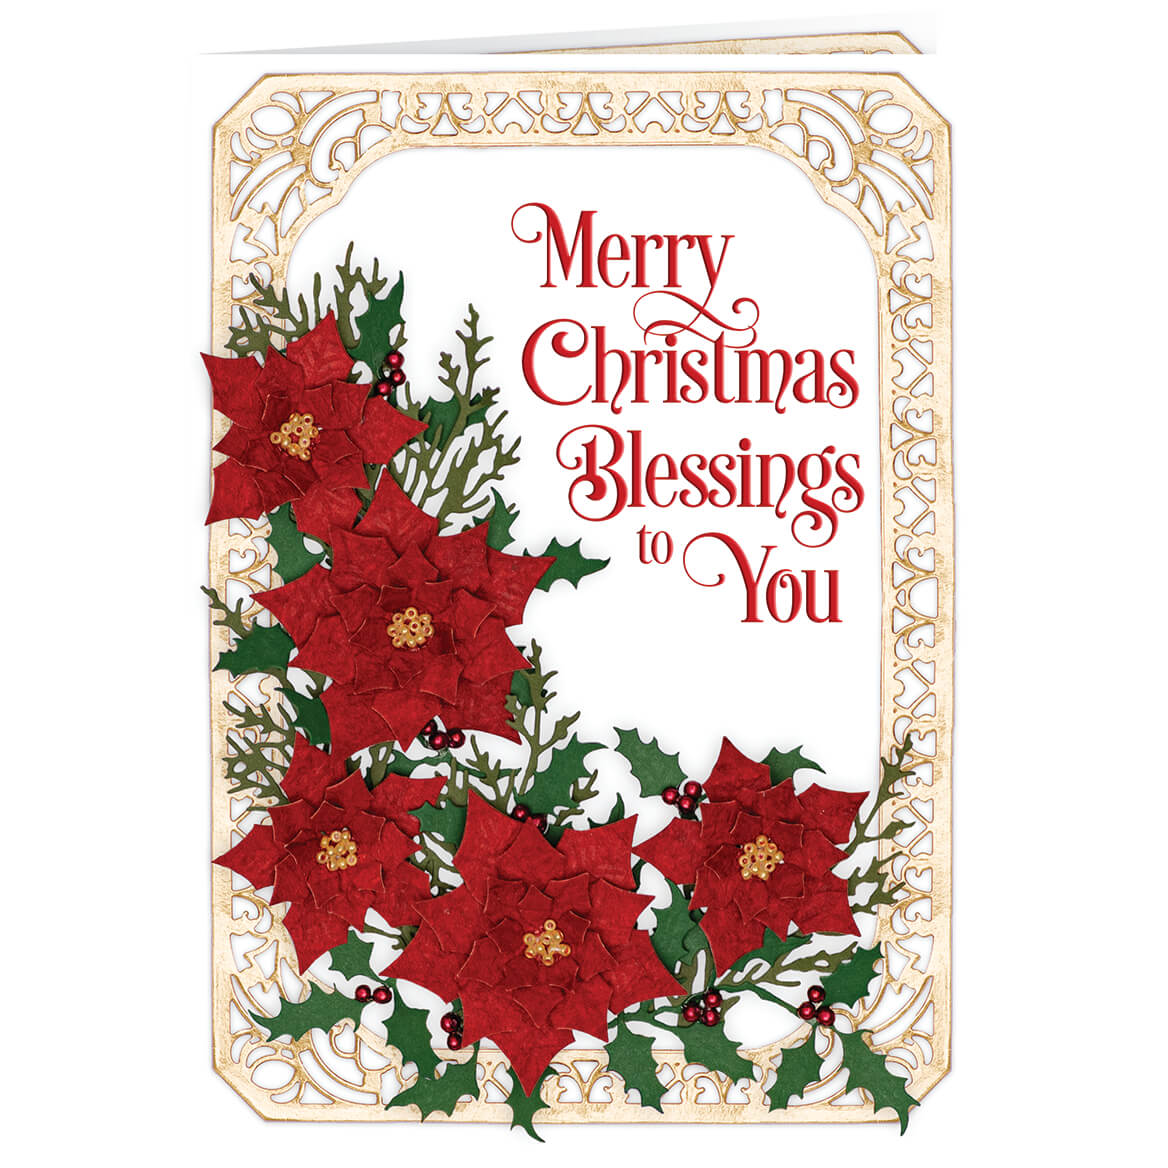 Personalized Poinsettia Collage Christmas Card Set of 20-370187